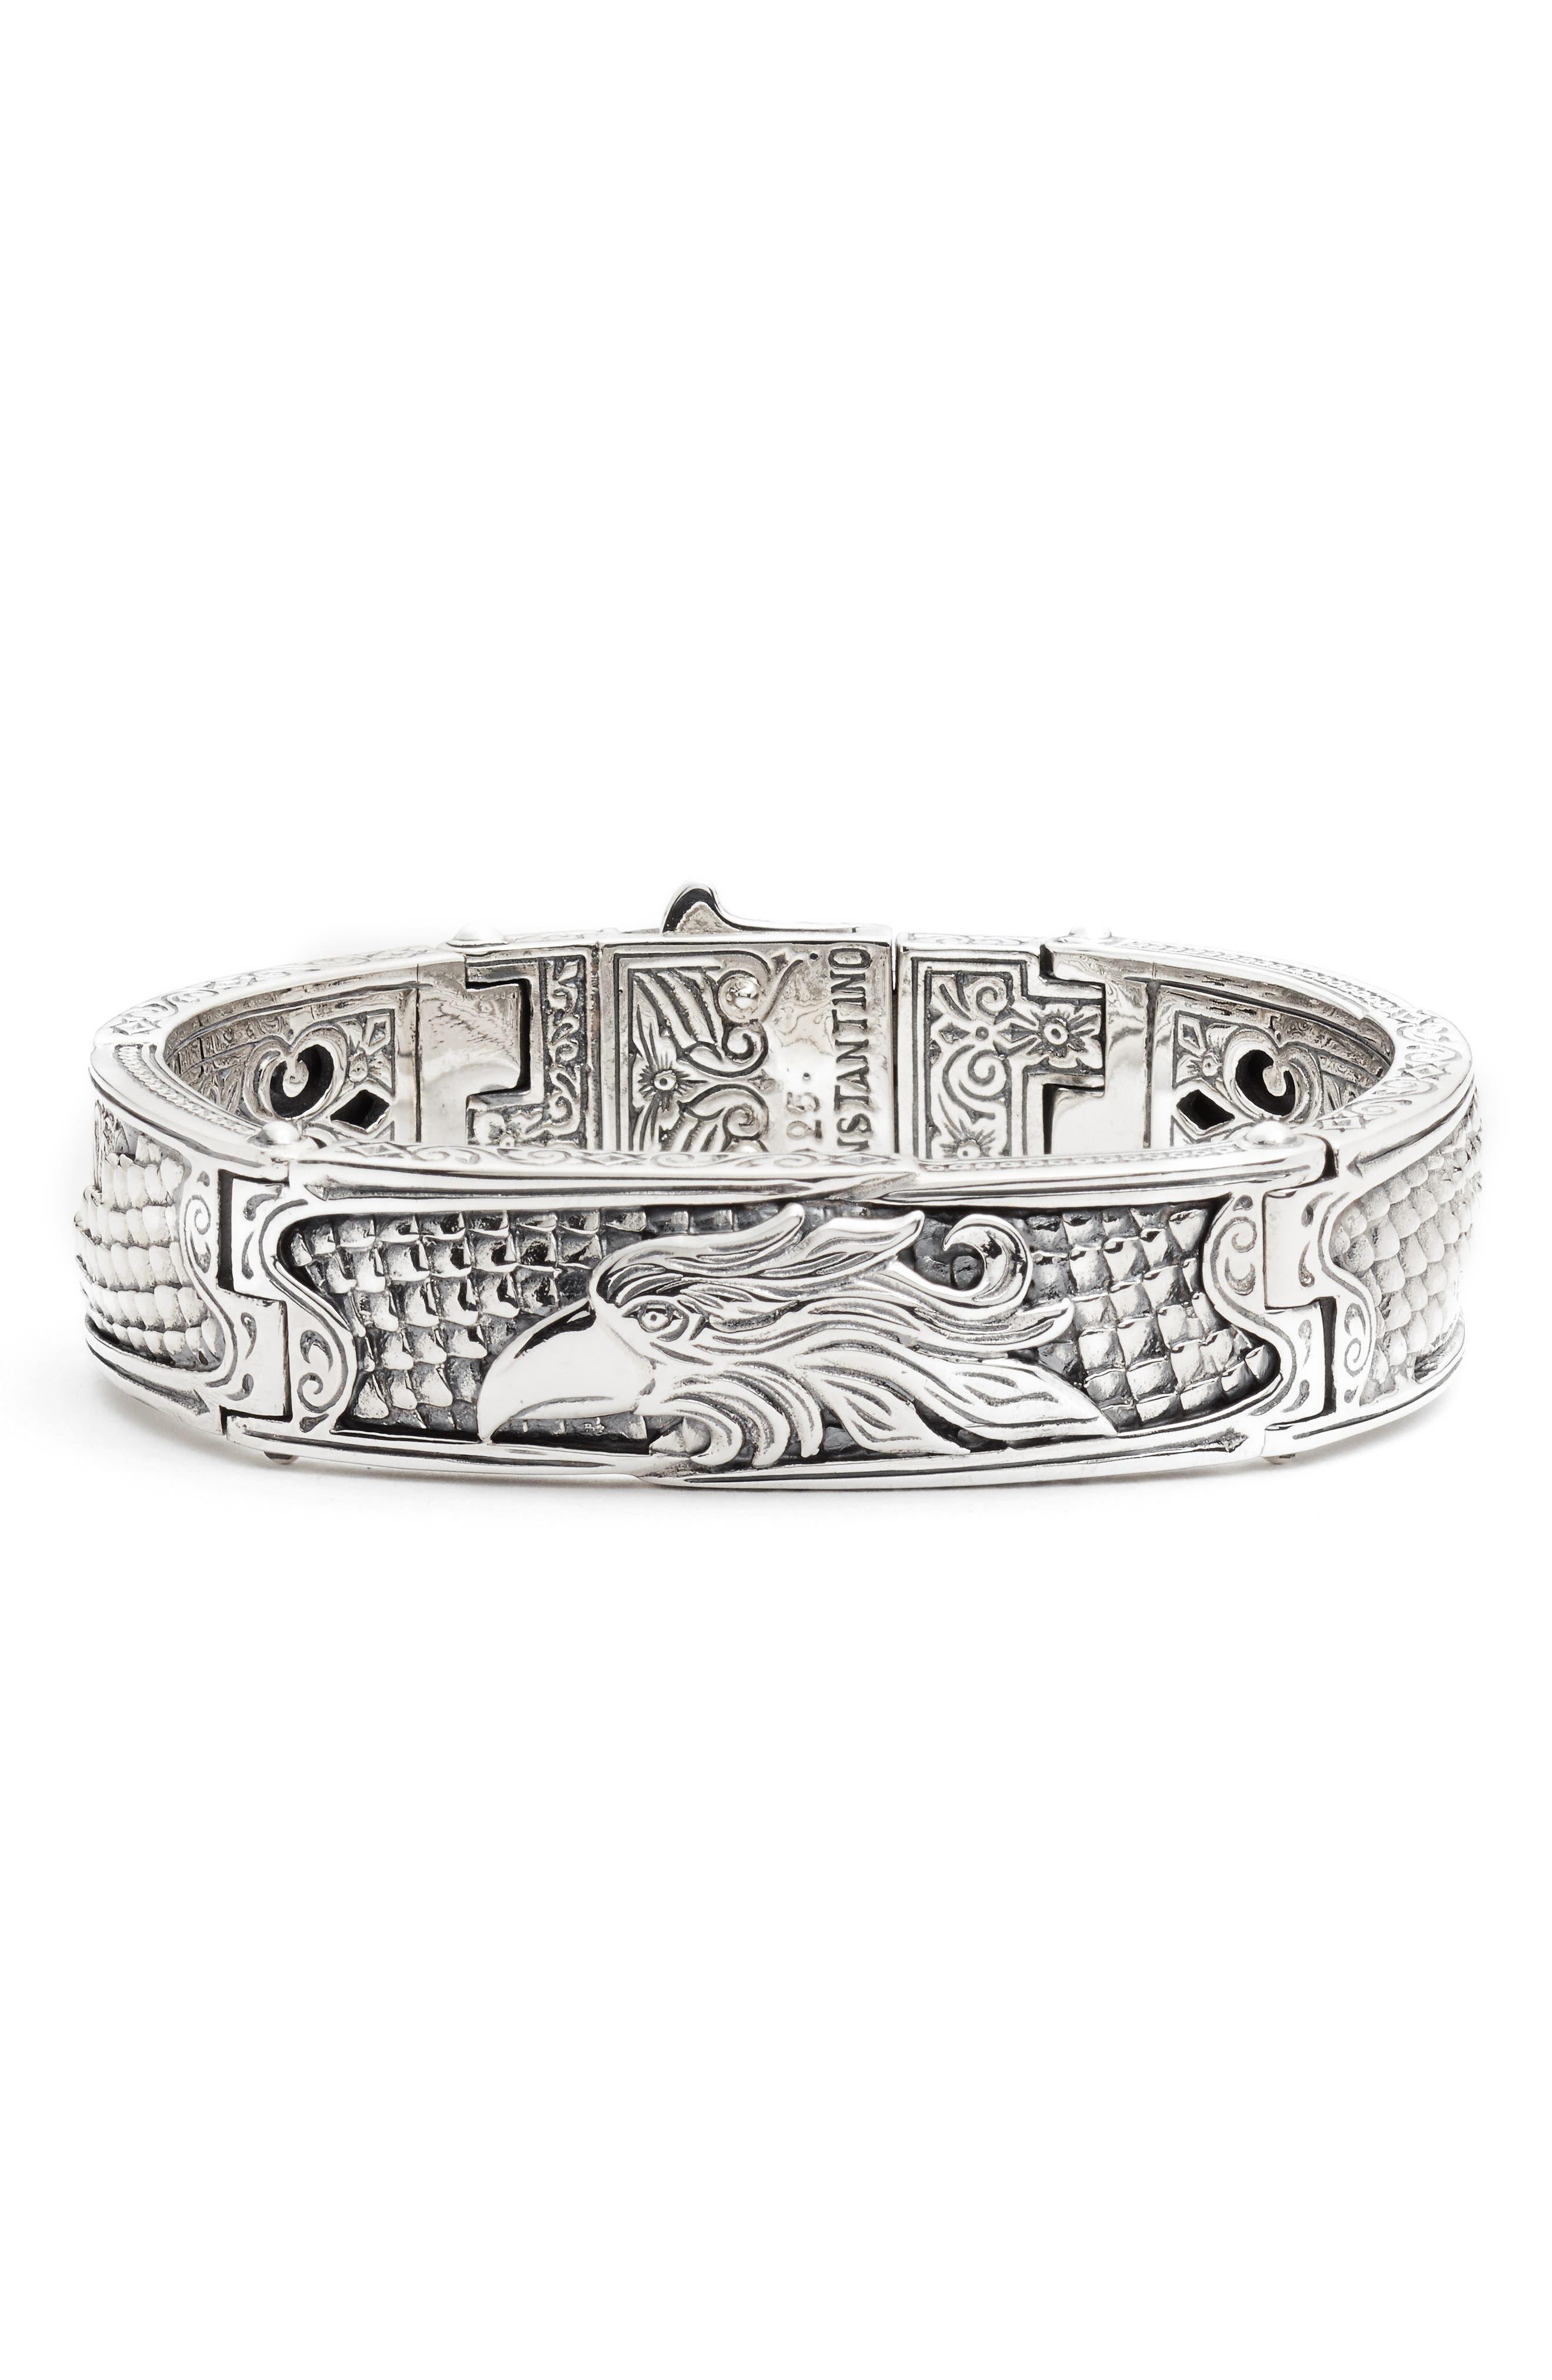 Heonos Men's Eagle Bracelet,                             Main thumbnail 1, color,                             SILVER